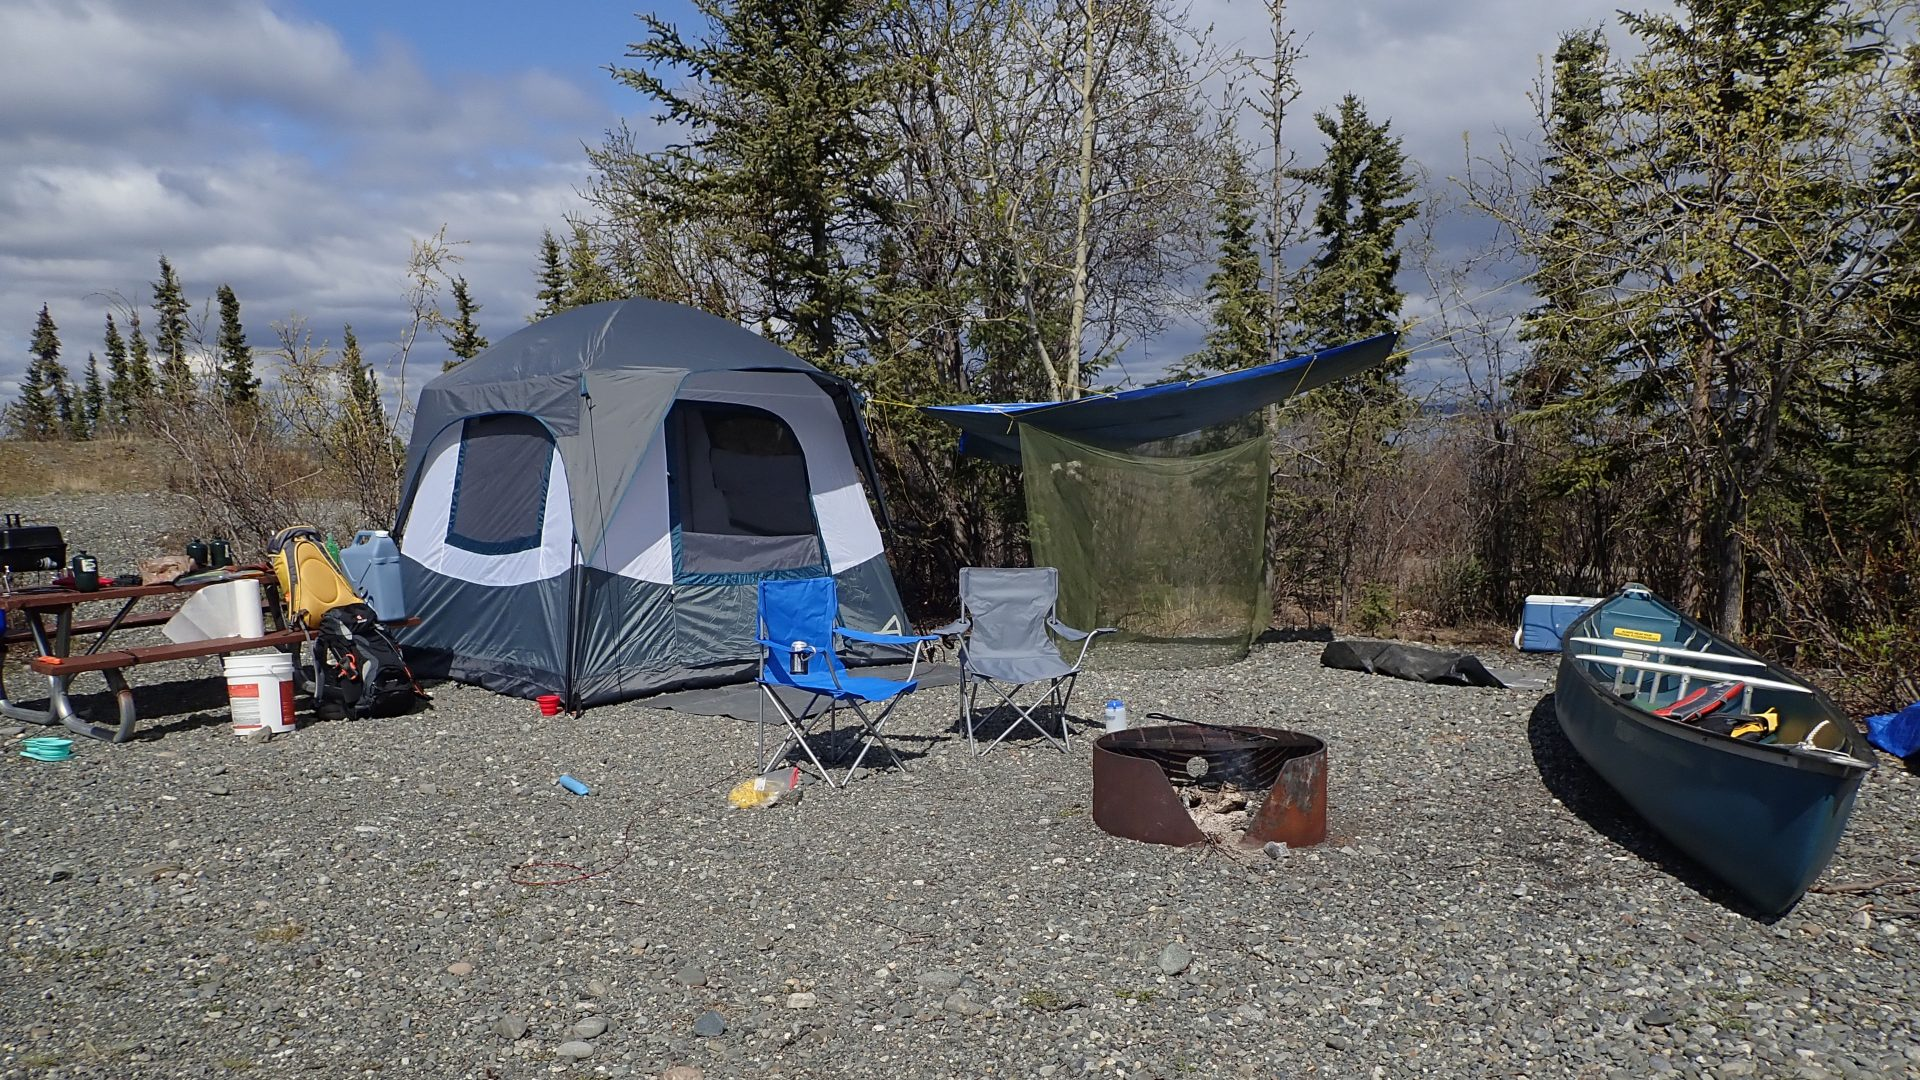 Camping site at Lake Louise with tent, fire, and canoe